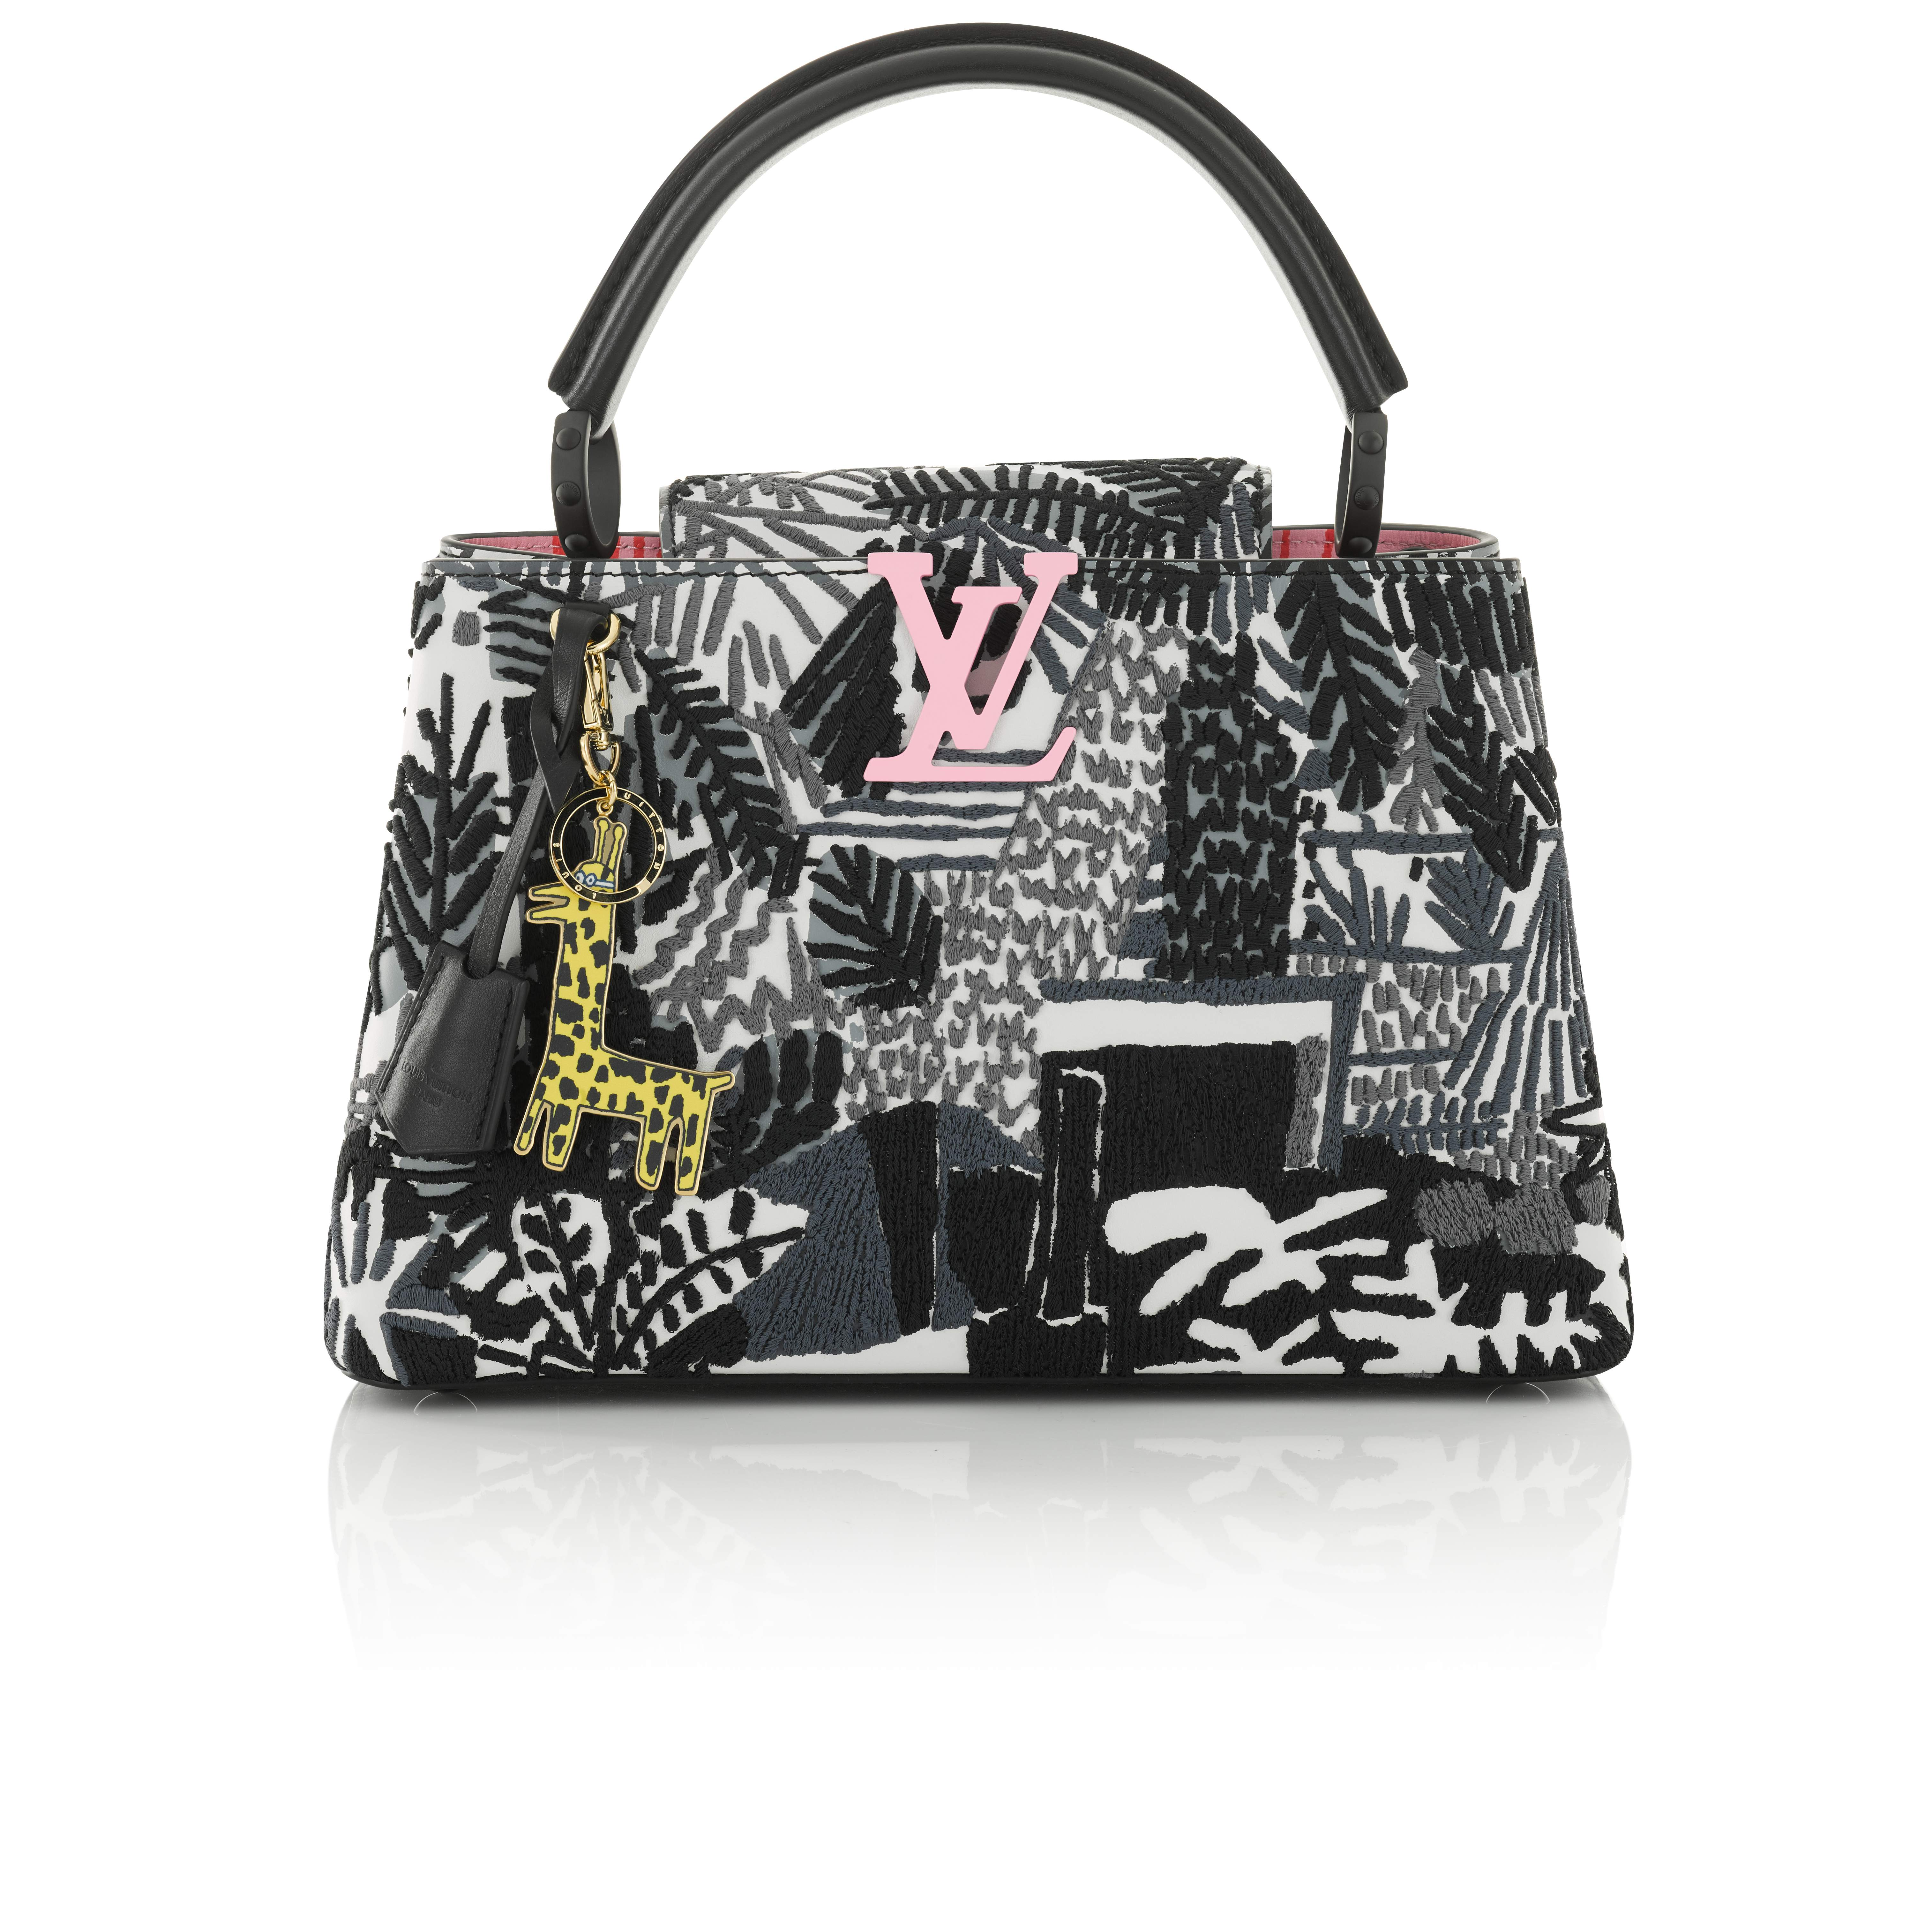 View full screen - View 1 of Lot 8. Artycapucines Printed Stitched Leather Bag PM in Calfskin Leather and Pink, Black and White Hardware, 2019.